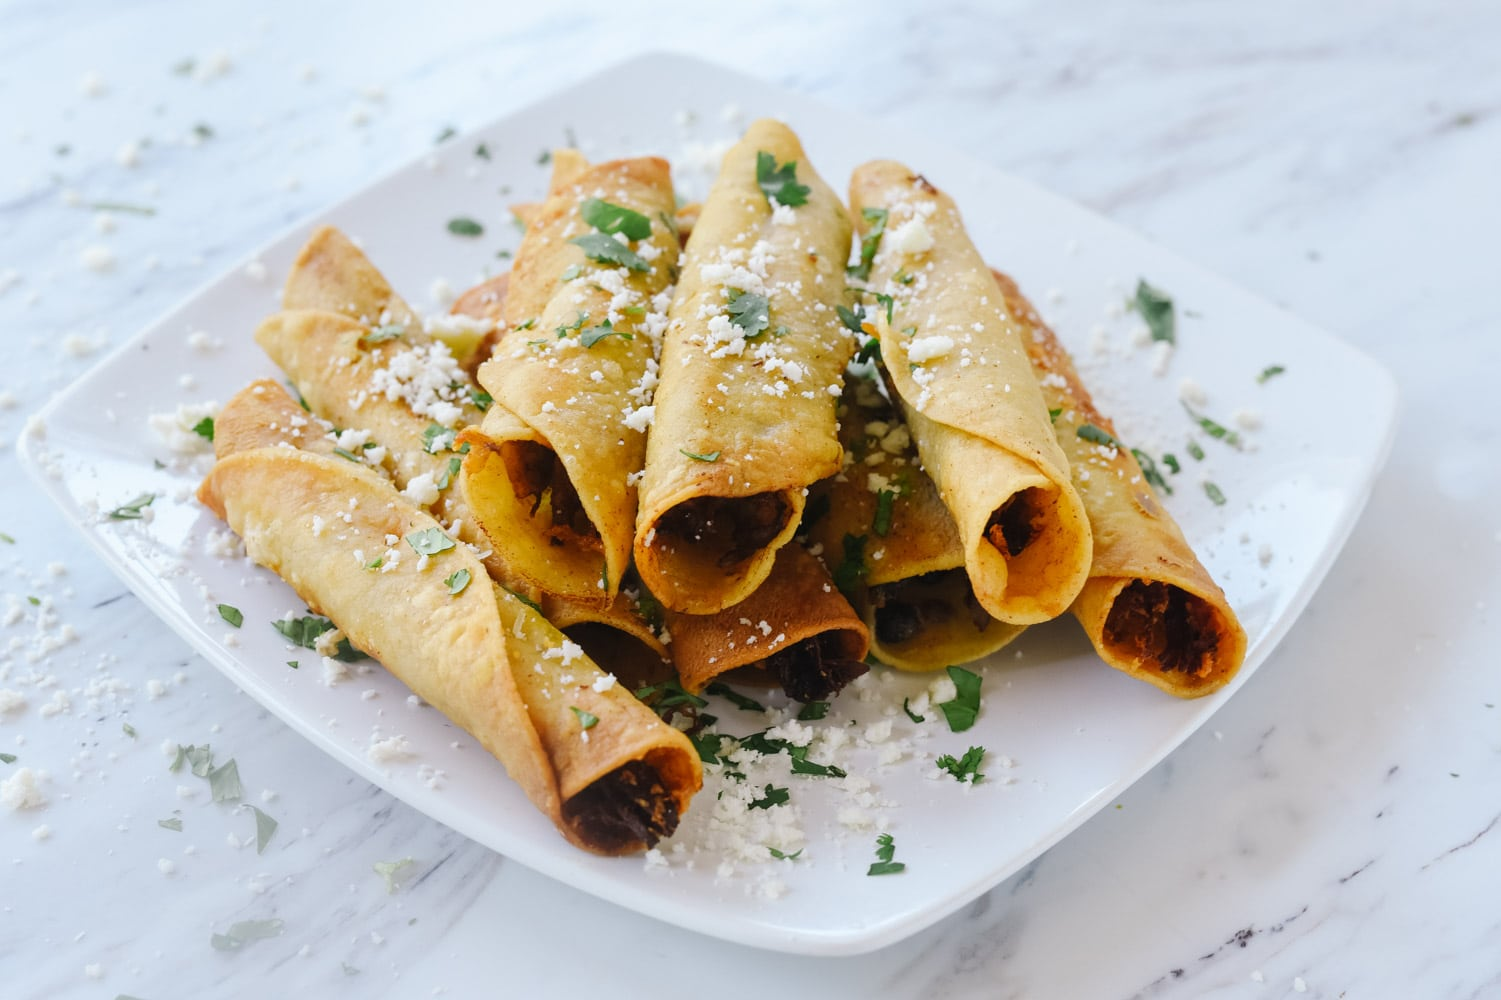 taquitos with cheese and cilantro